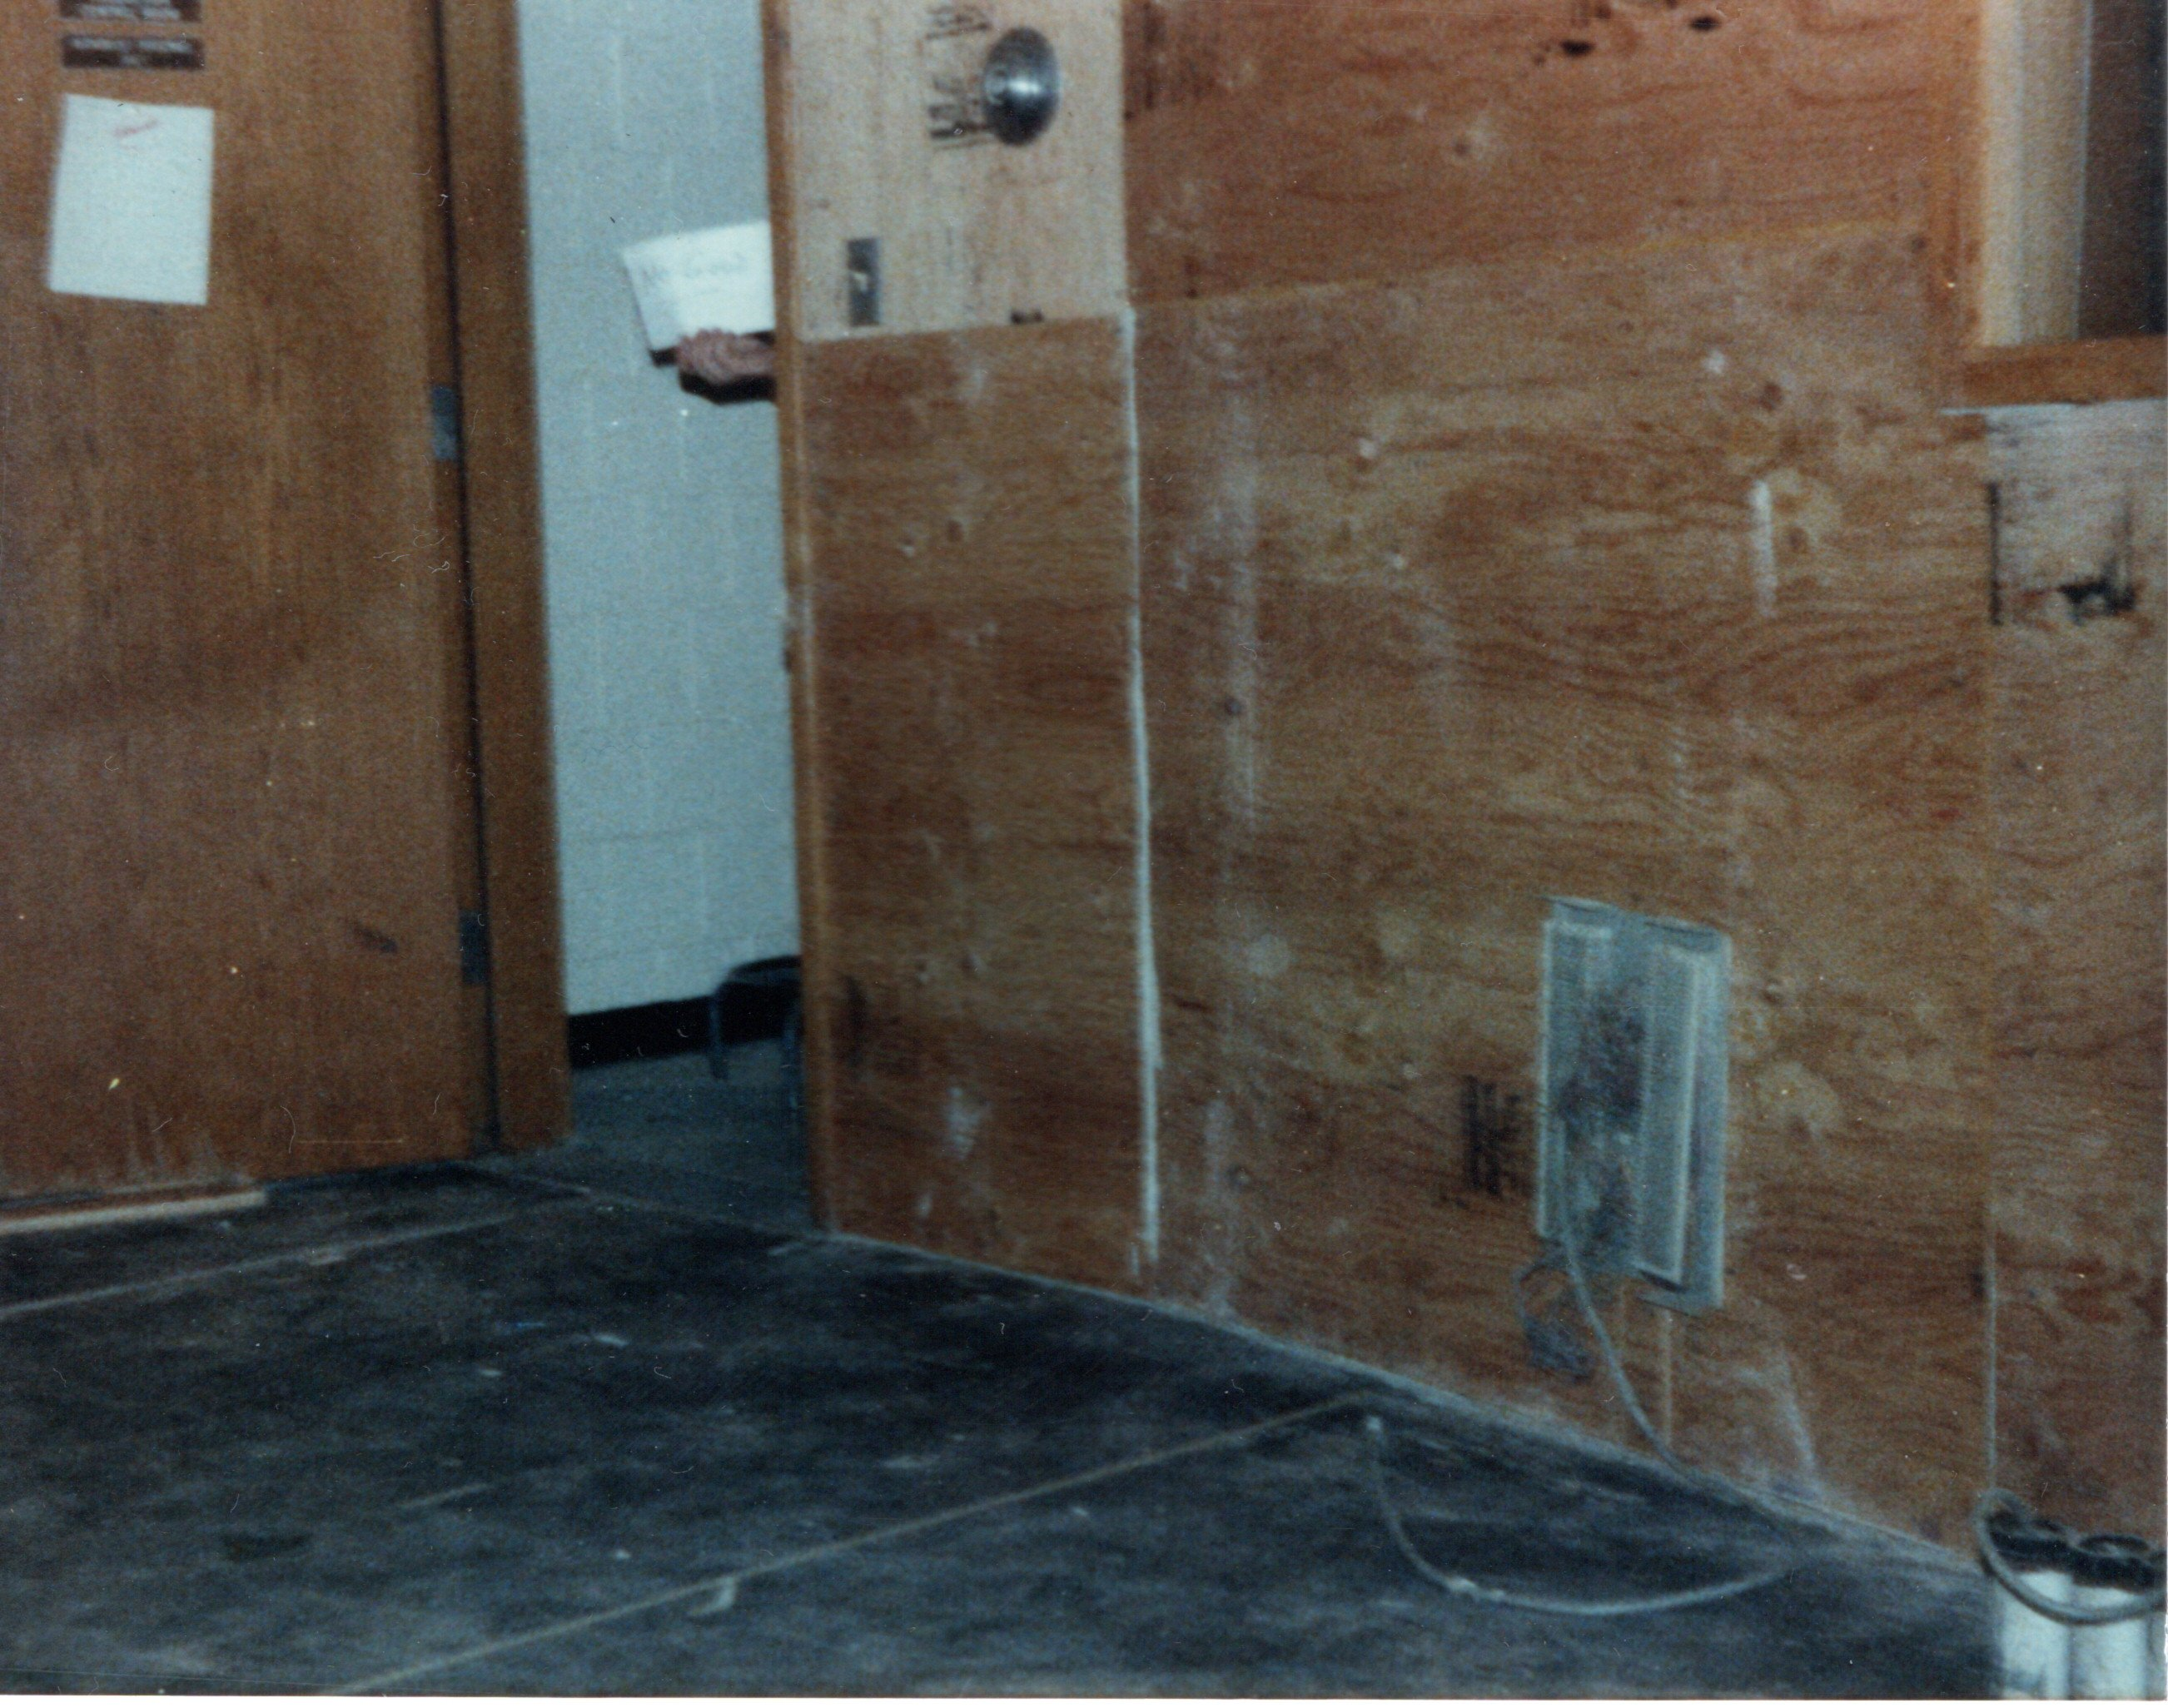 1985-Production Rebuild - Plywood on the wall to mount items